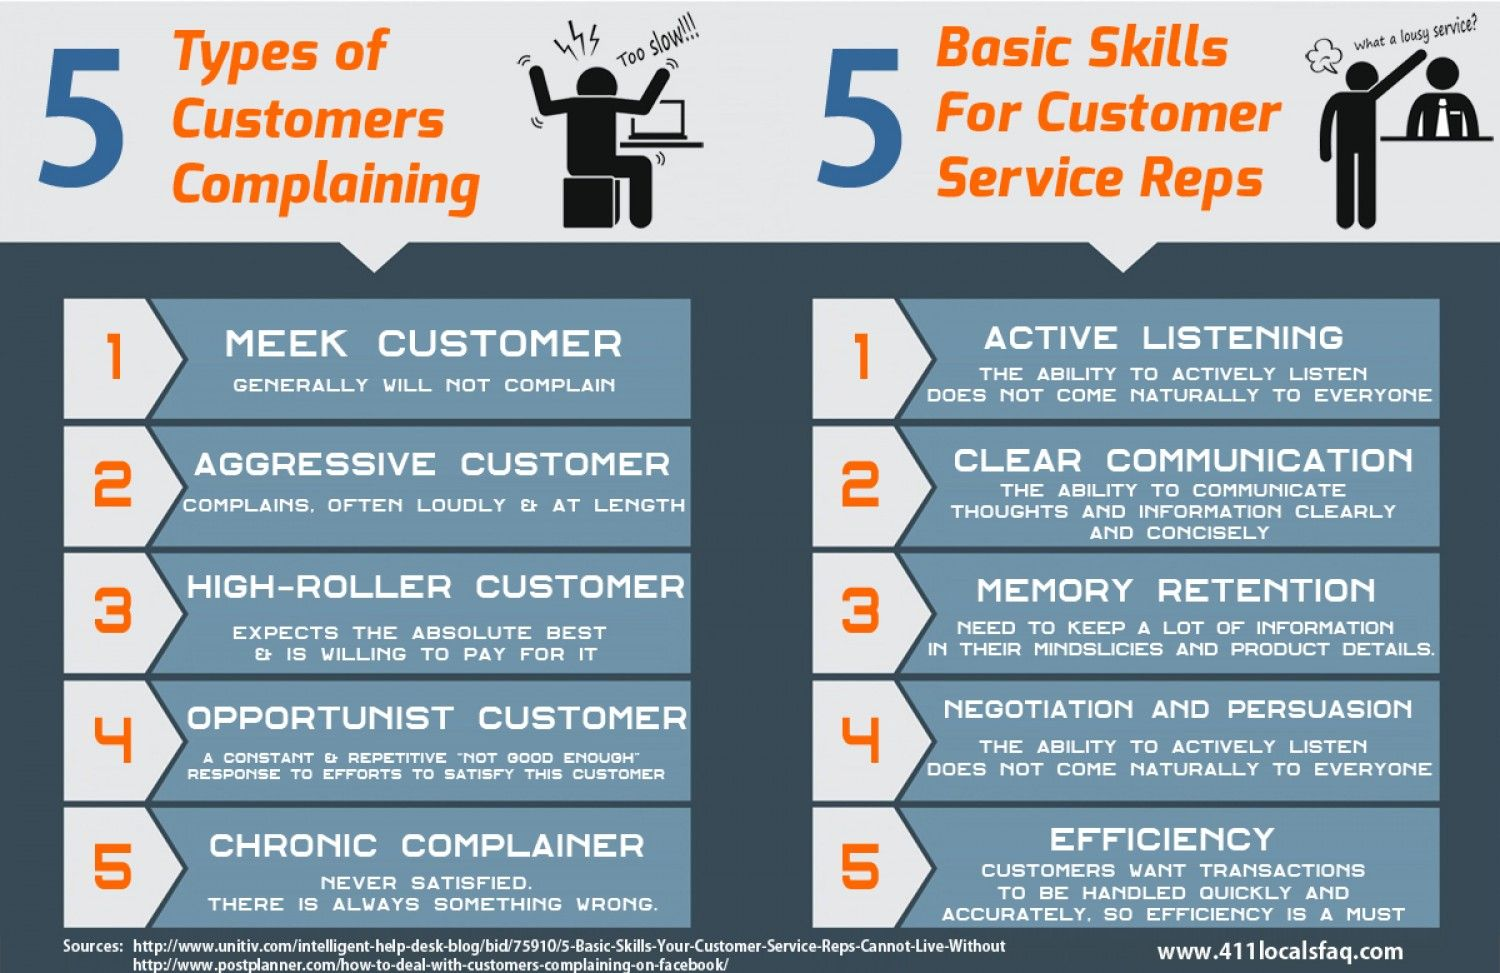 customer types In sales, commerce and economics, a customer (sometimes known as a client, buyer, or purchaser) is the recipient of a good, service, product or an idea - obtained from a seller, vendor, or supplier via a financial transaction or exchange for money or some other valuable consideration.